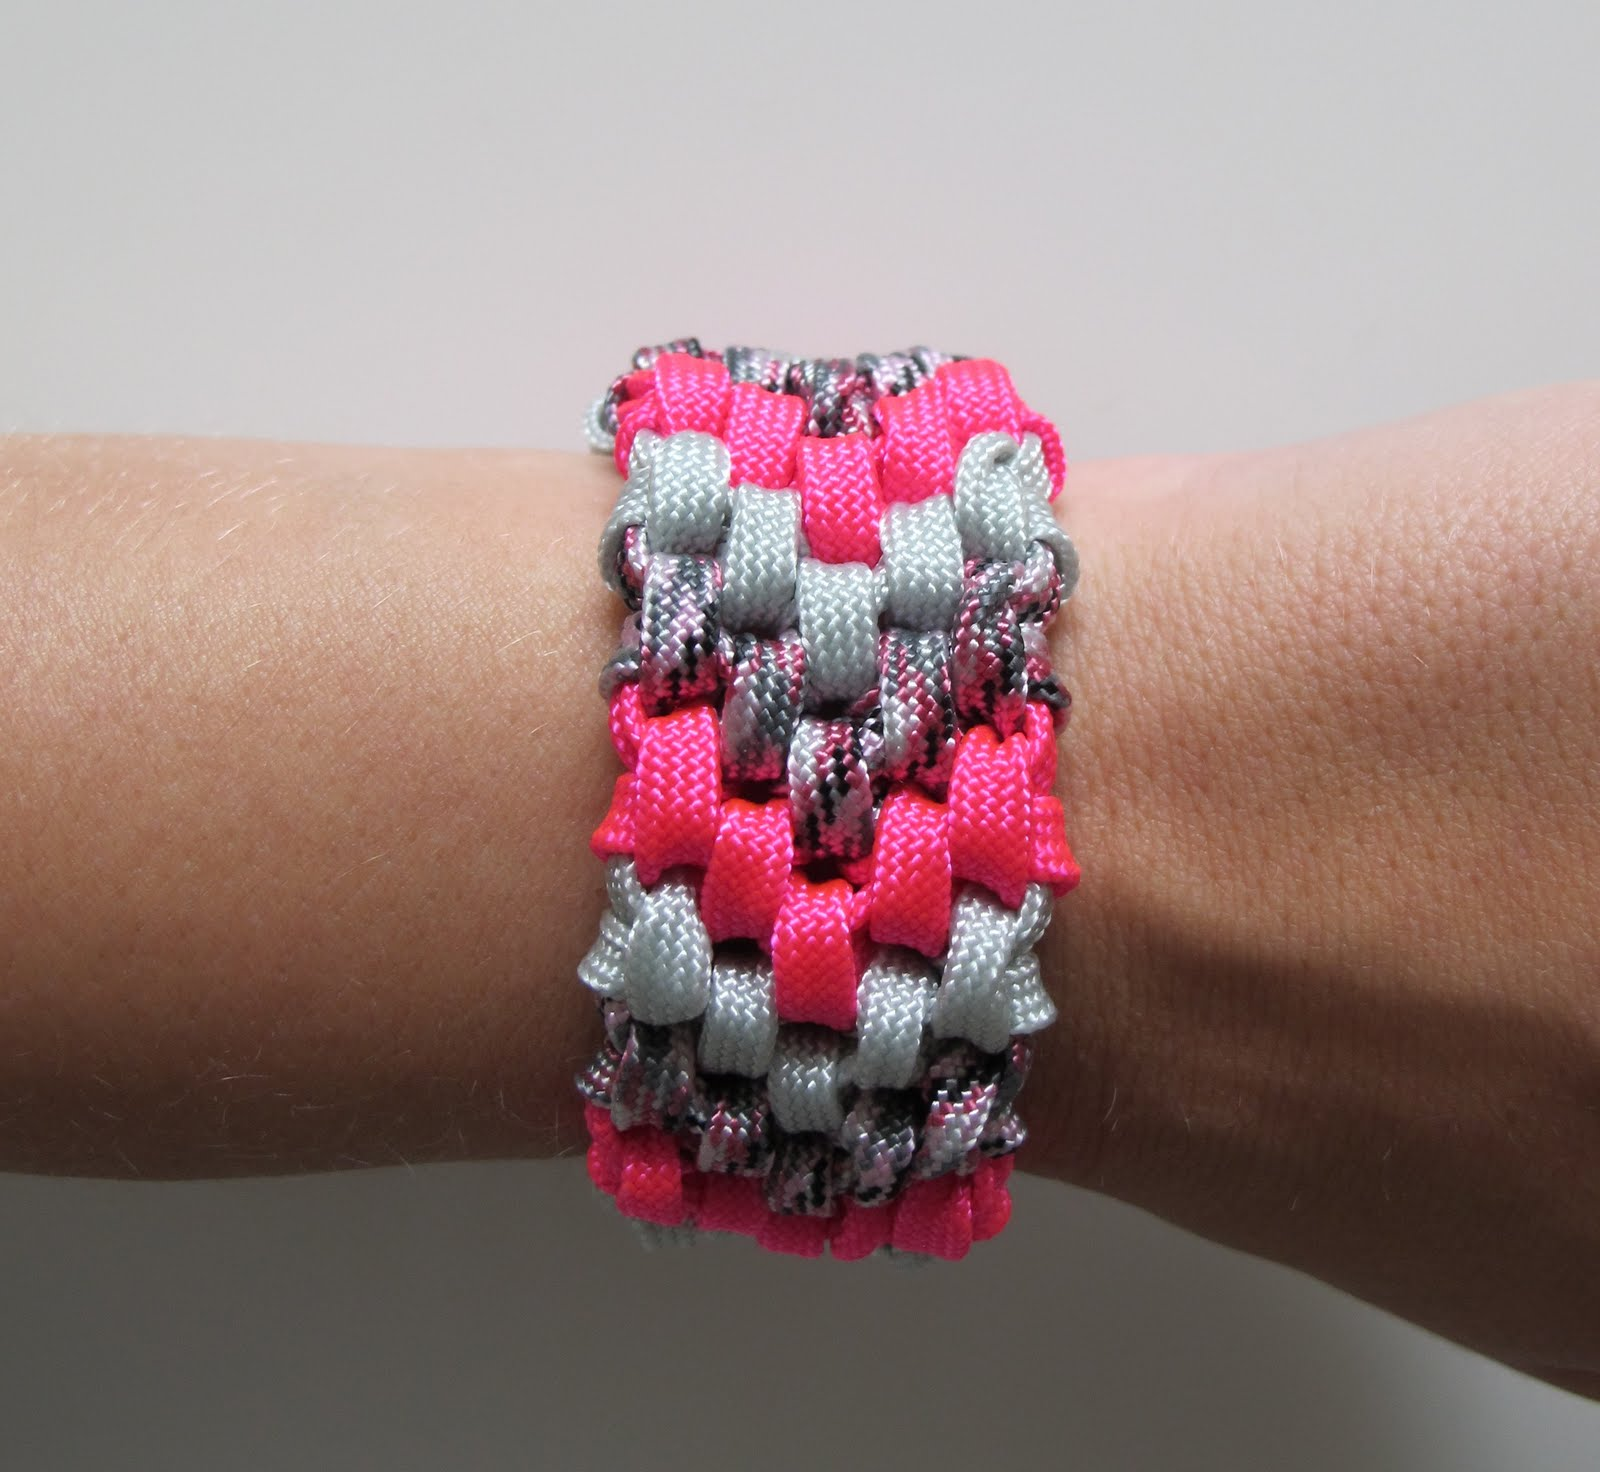 make search friendship images bracelet how tool galleries patterns to designs embroidery